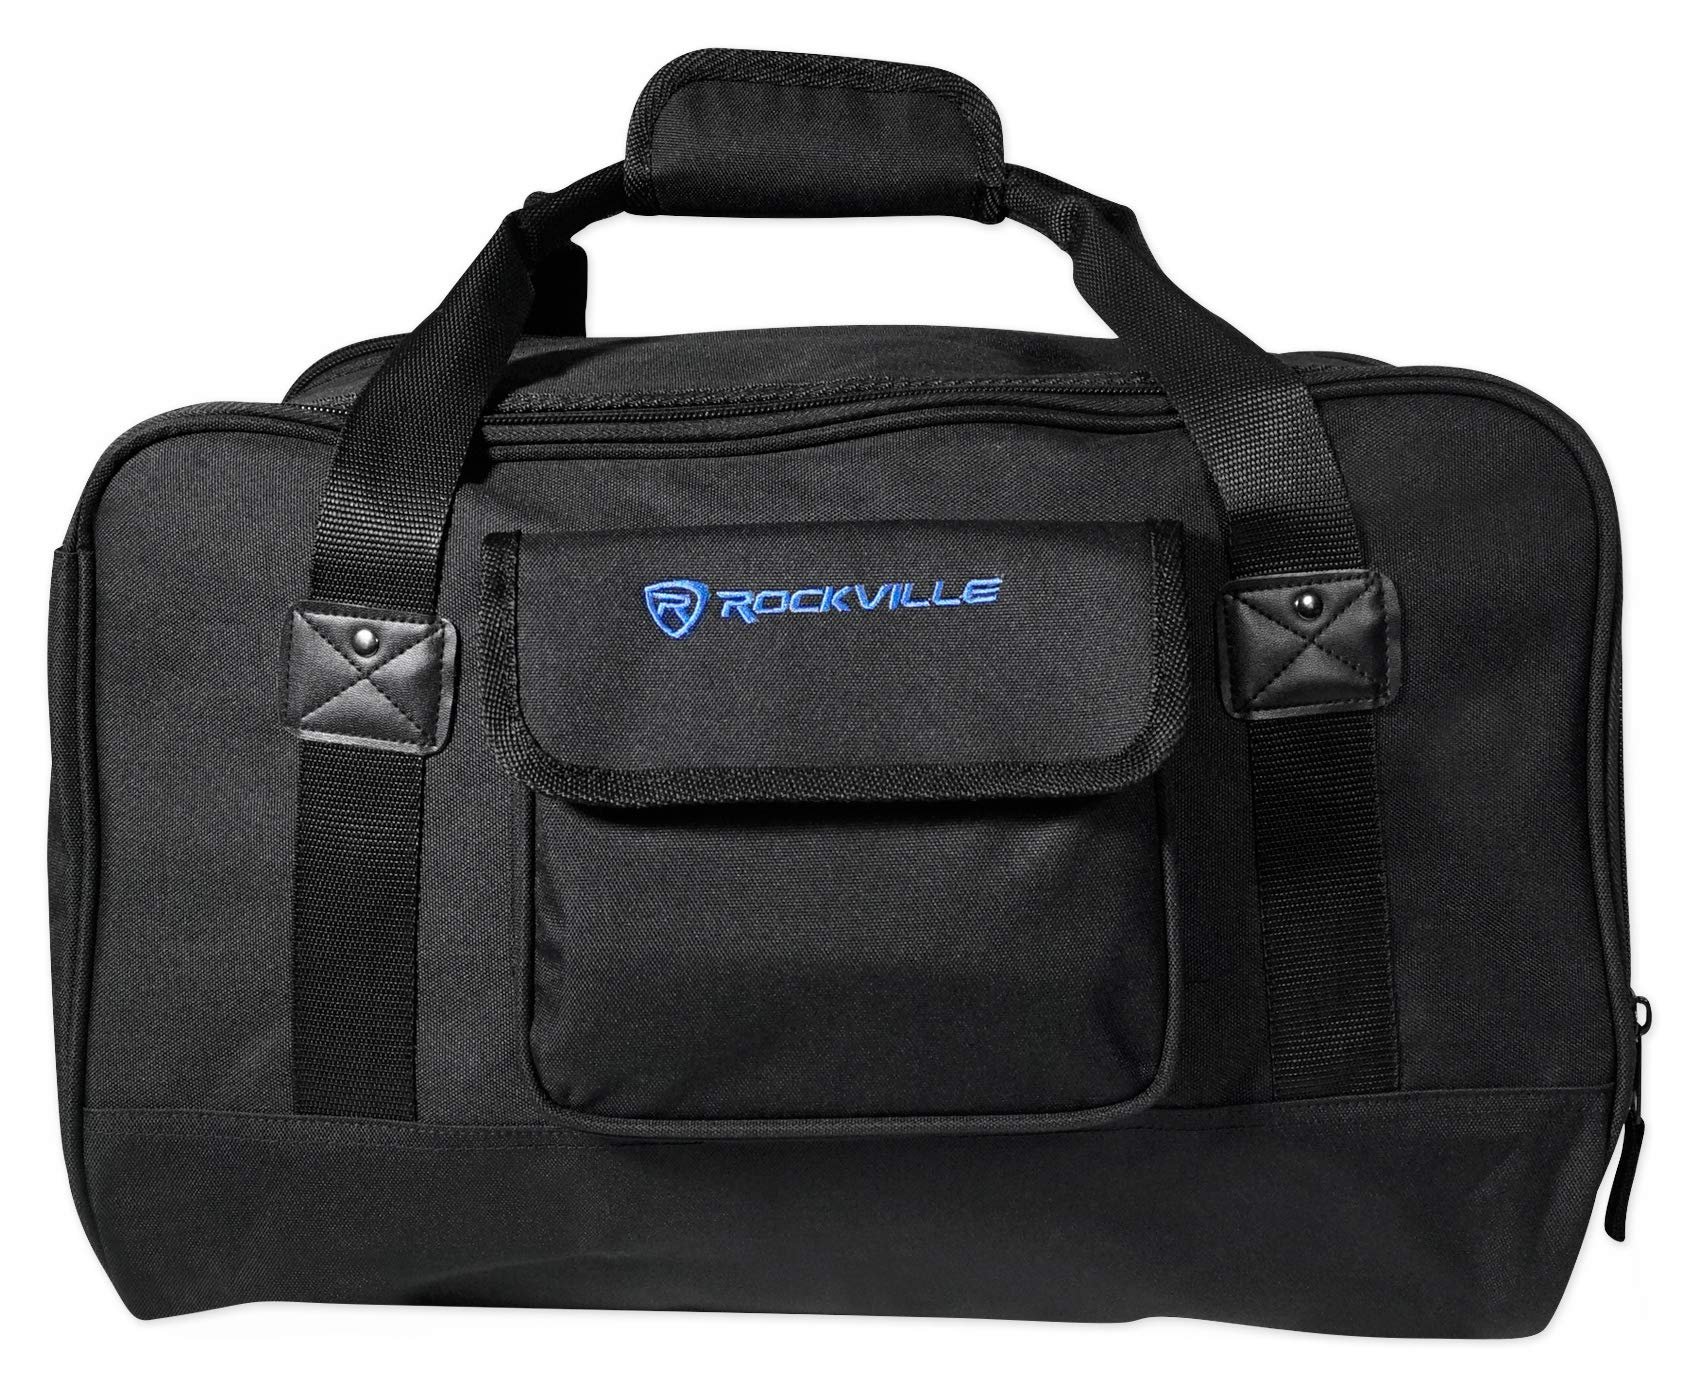 Rockville Weather Proof Speaker Bag Carry Case For QSC K8.2 8'' Speaker by Rockville